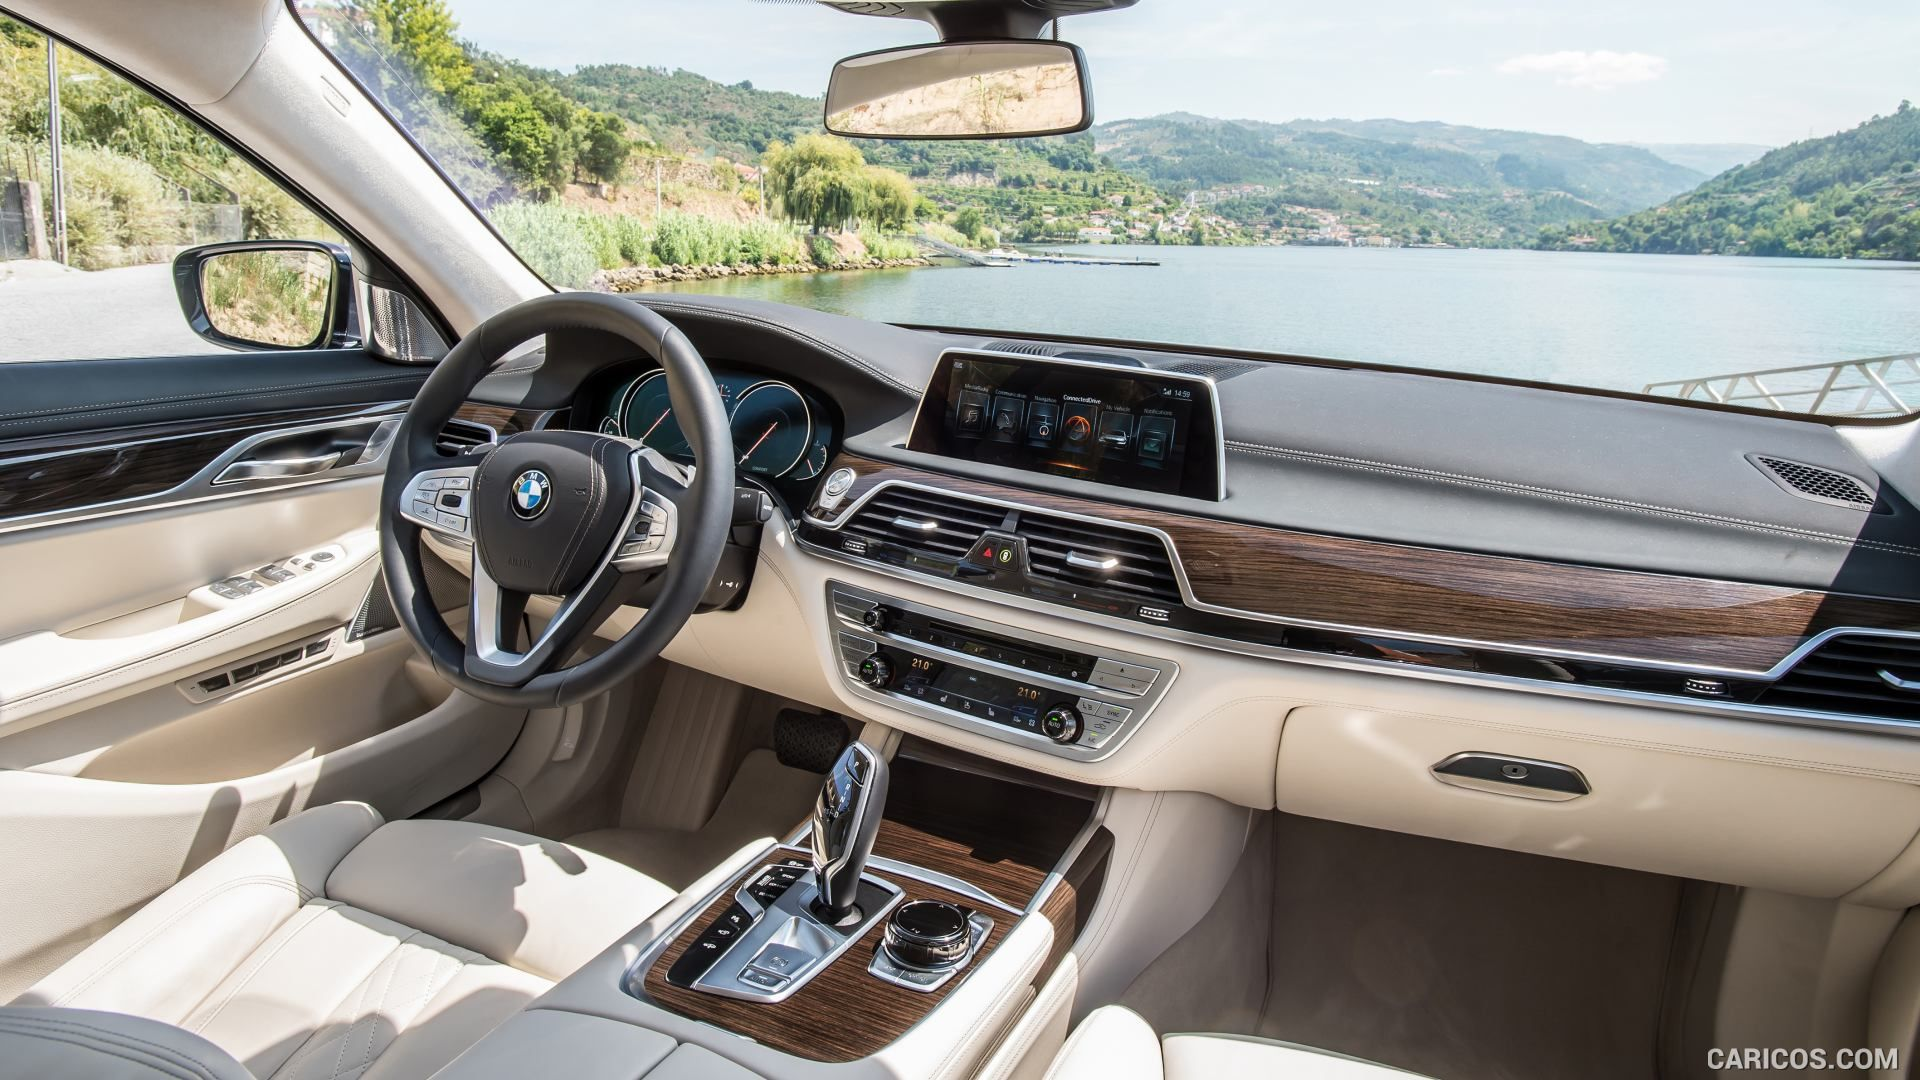 2016 Bmw 7 Series 730d Interior Dashboard Hd Wallpaper 236